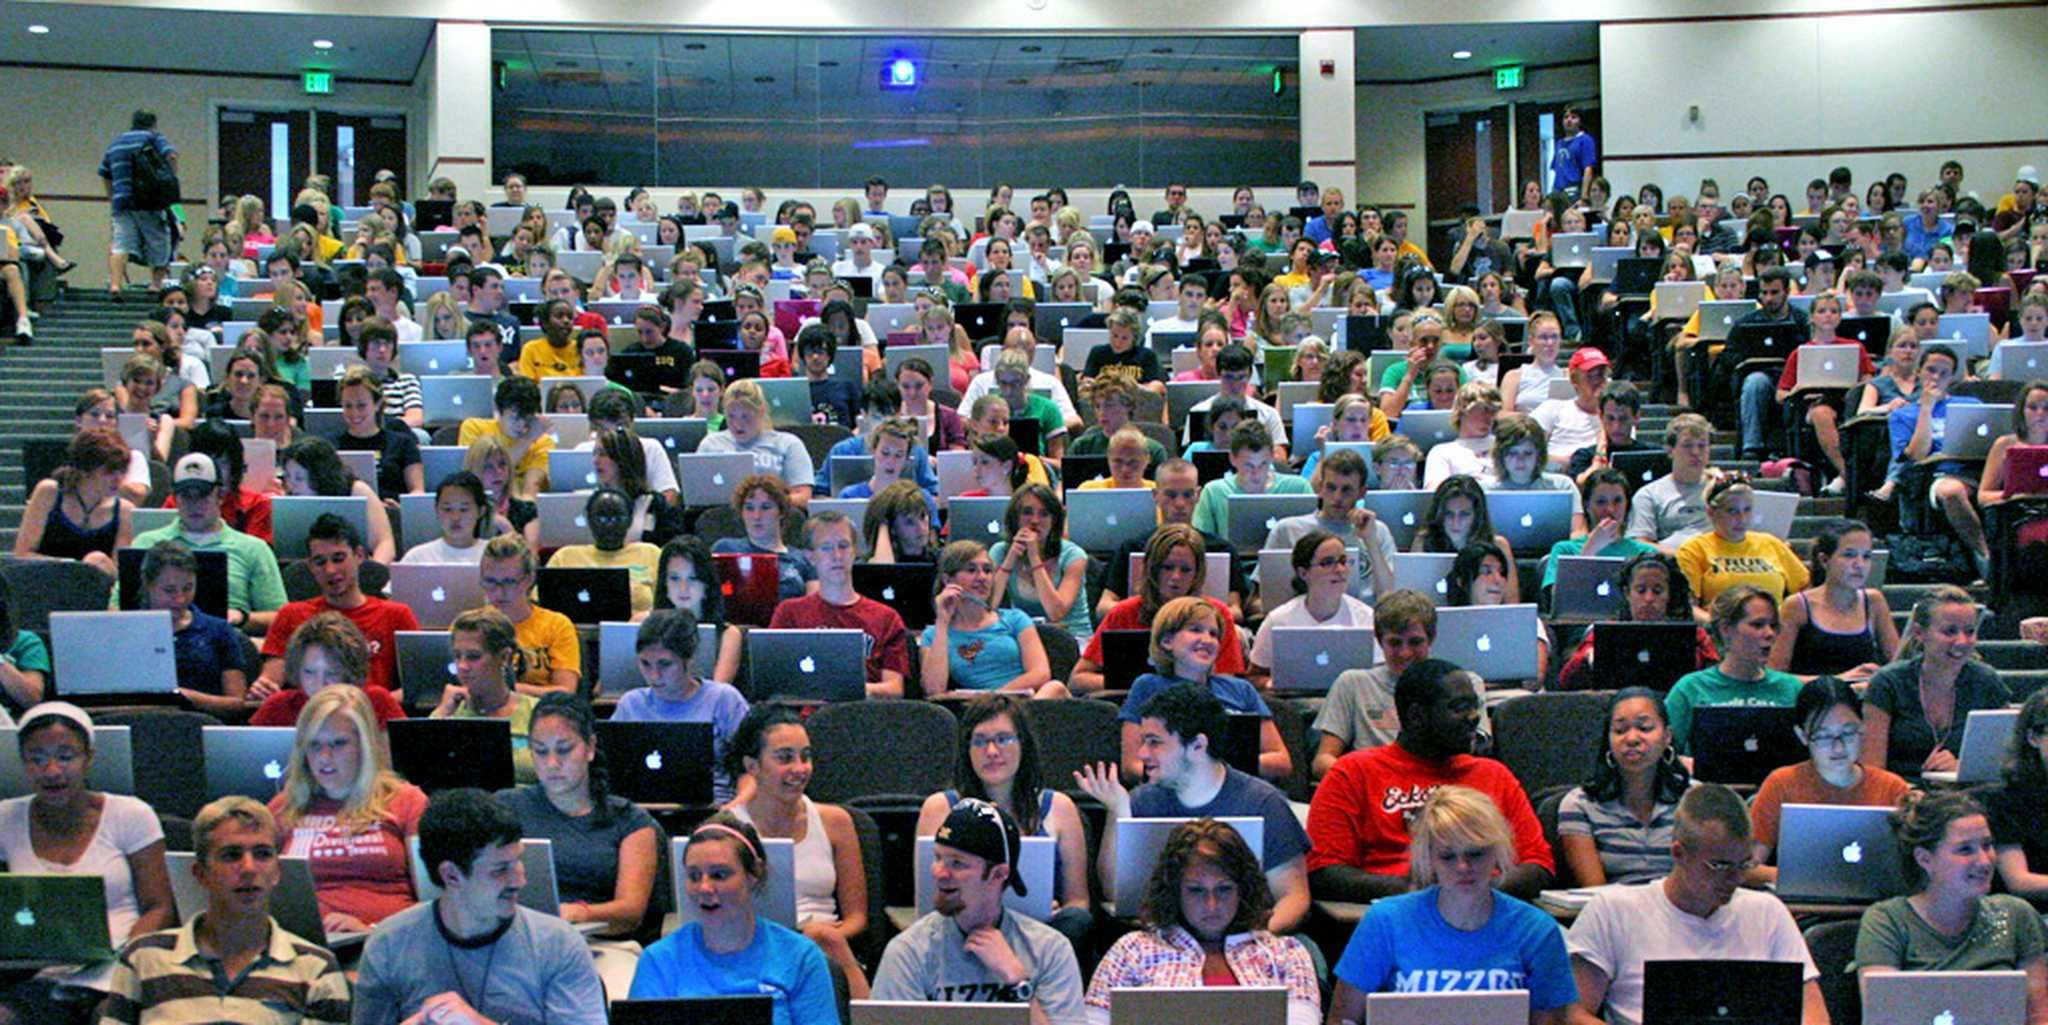 Evidence mounts that laptops are terrible for students at lectures ...